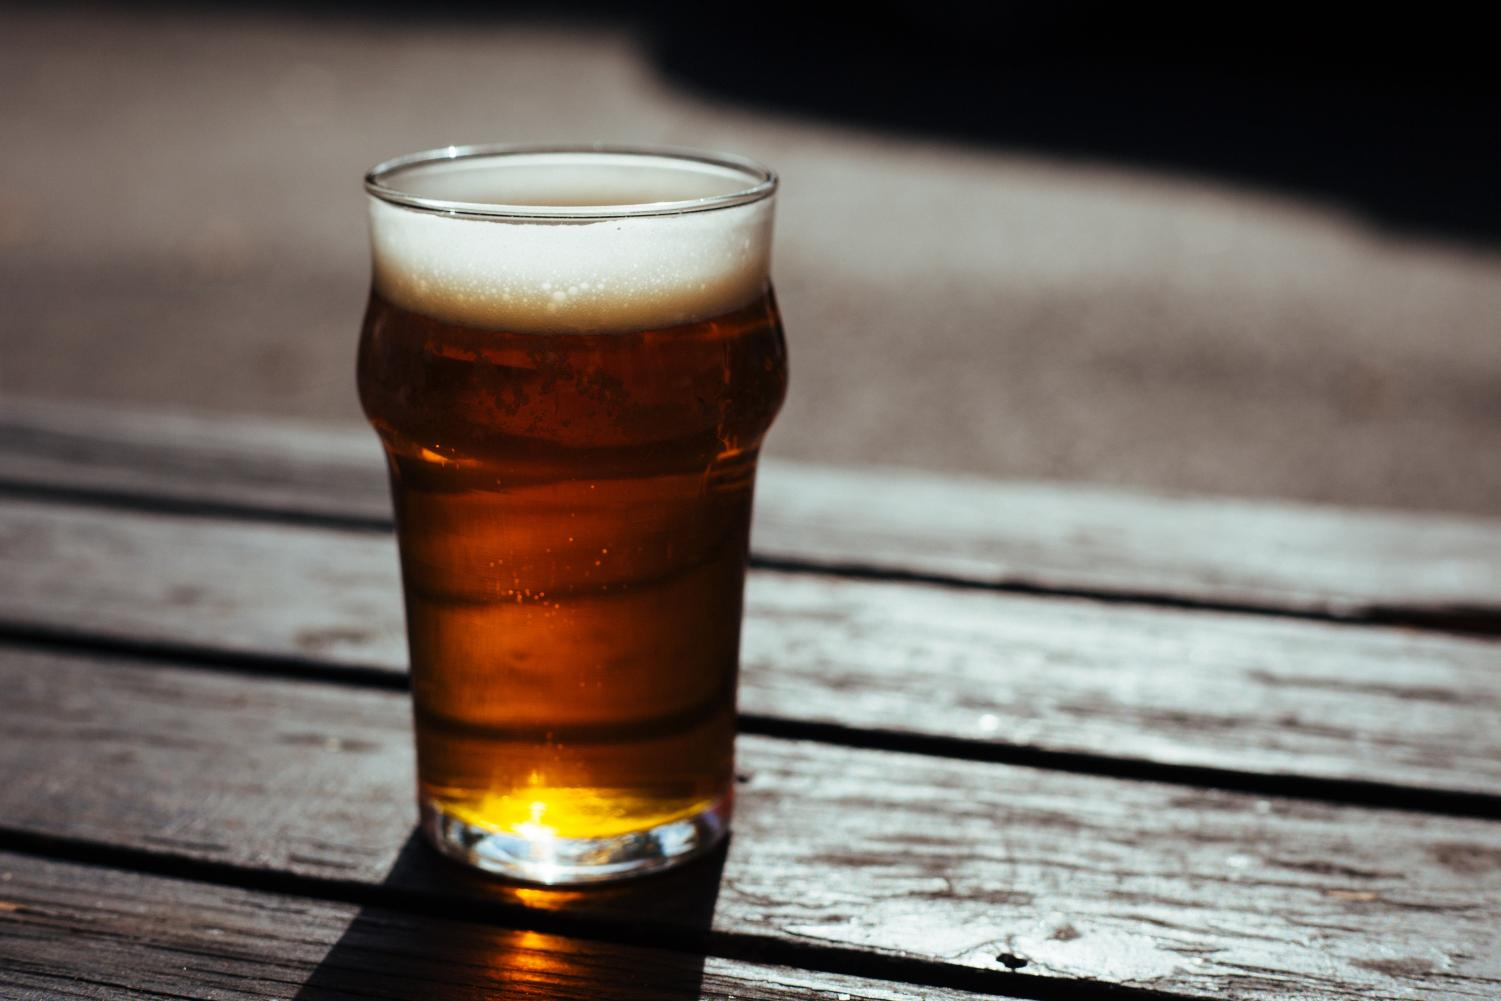 In Massachusetts, residents face strict drinking laws that have been decades in the making.